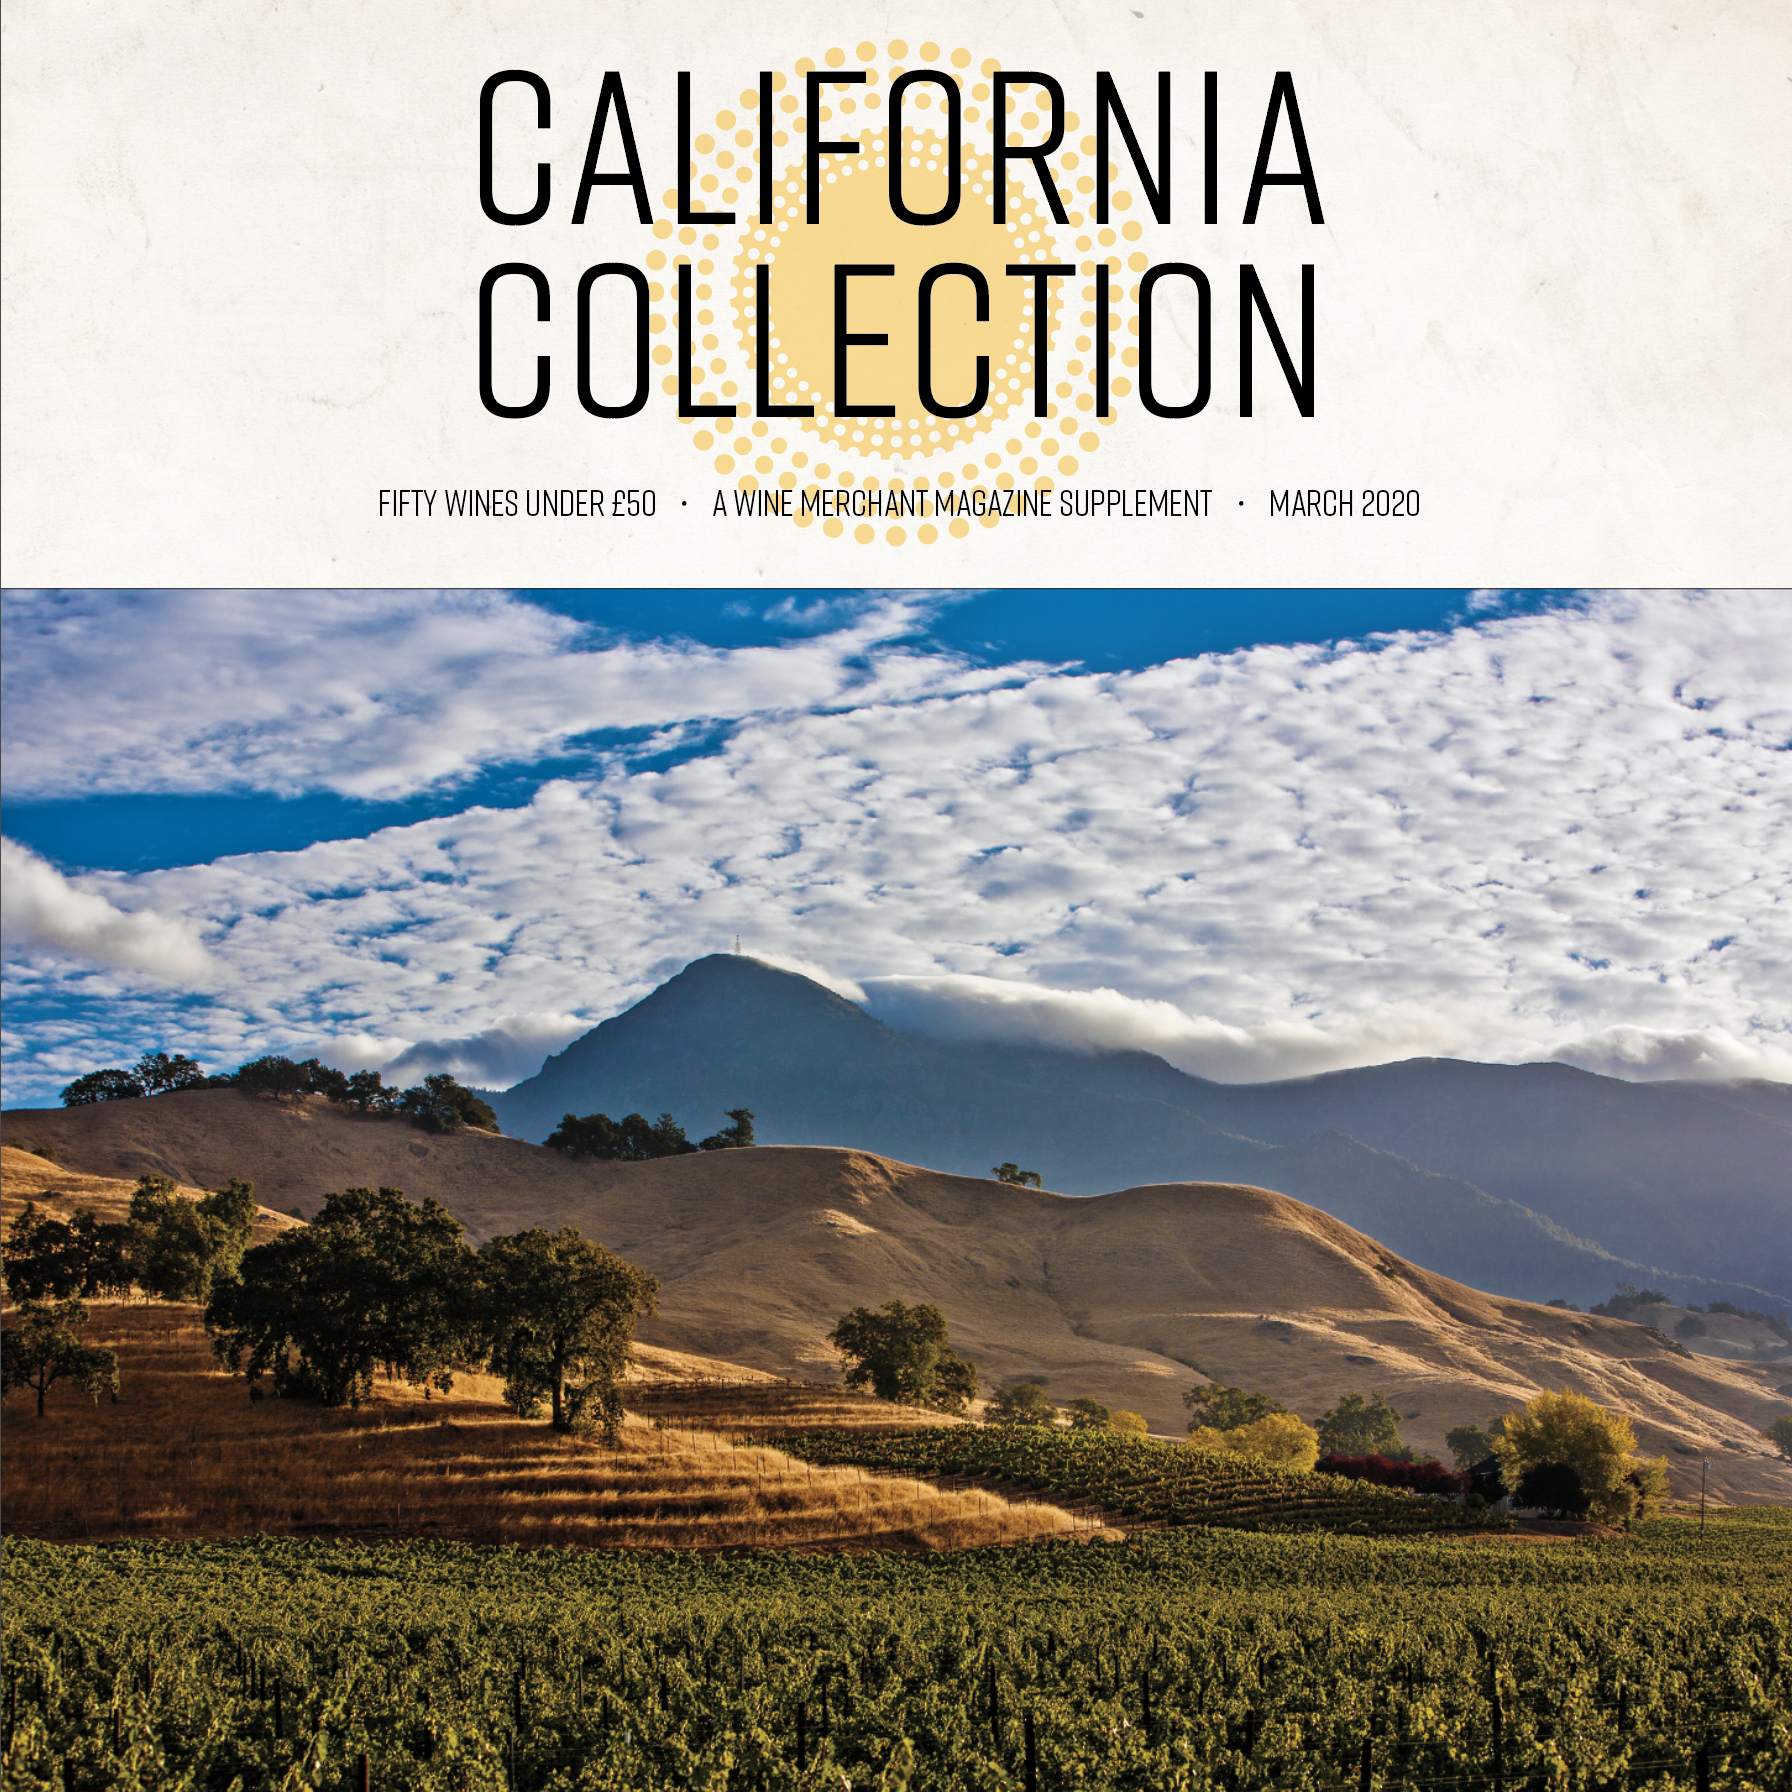 The Wine Merchant California Collection 2020